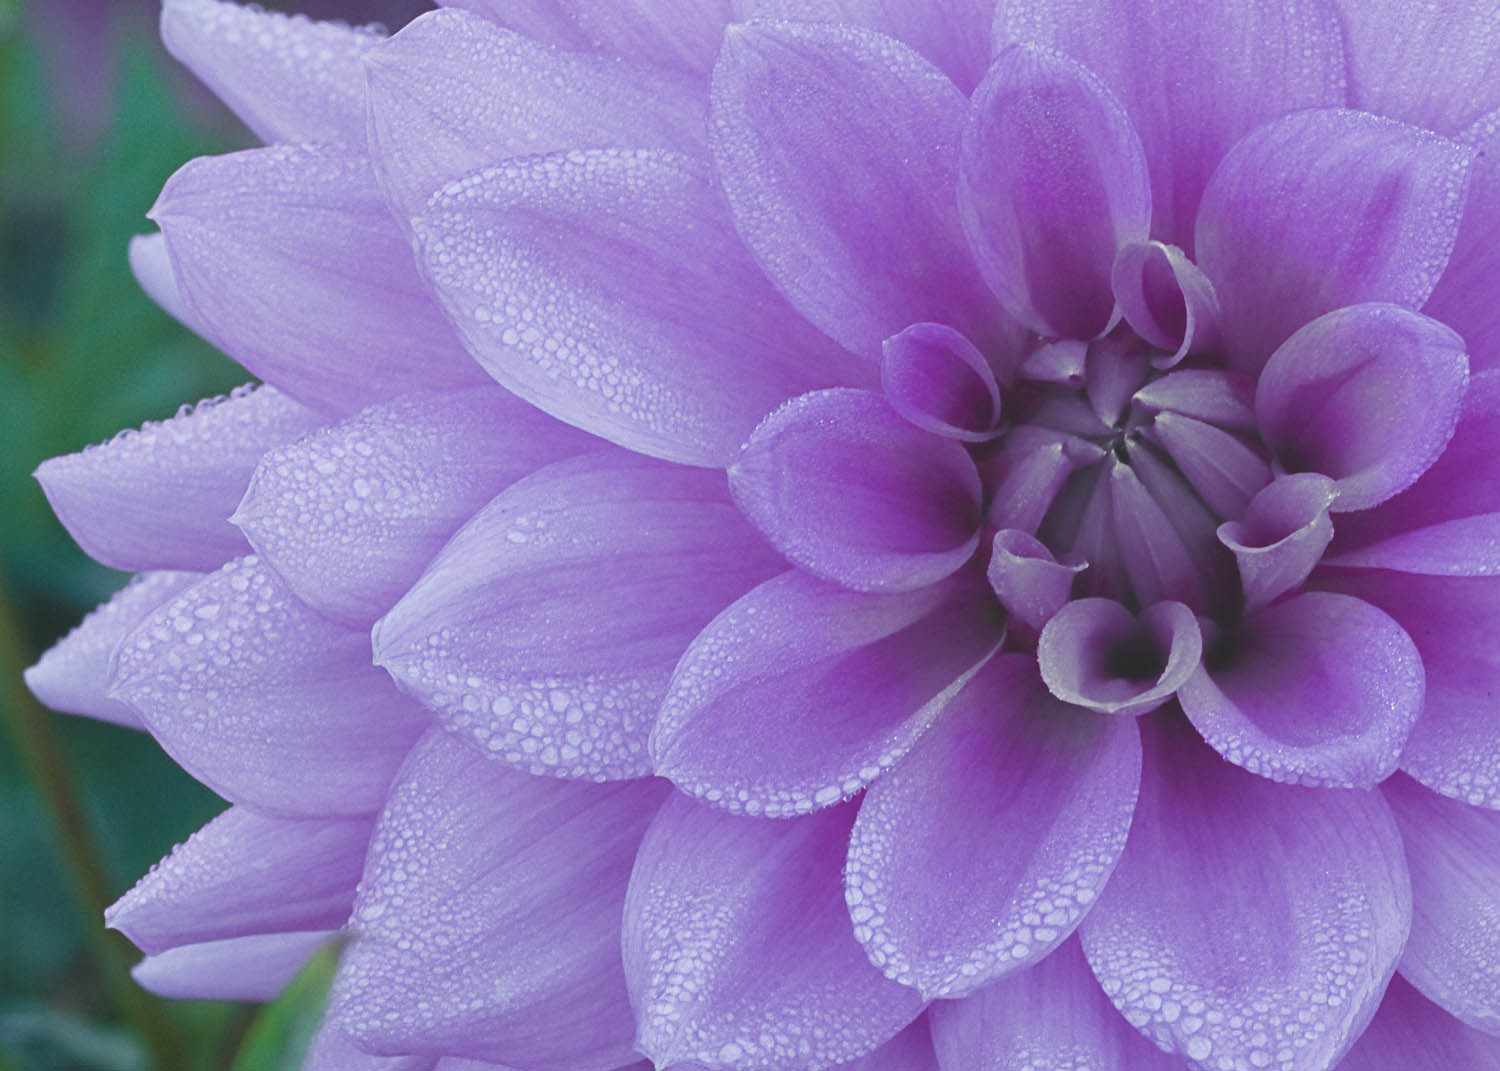 Dew on the Purple Dahlia